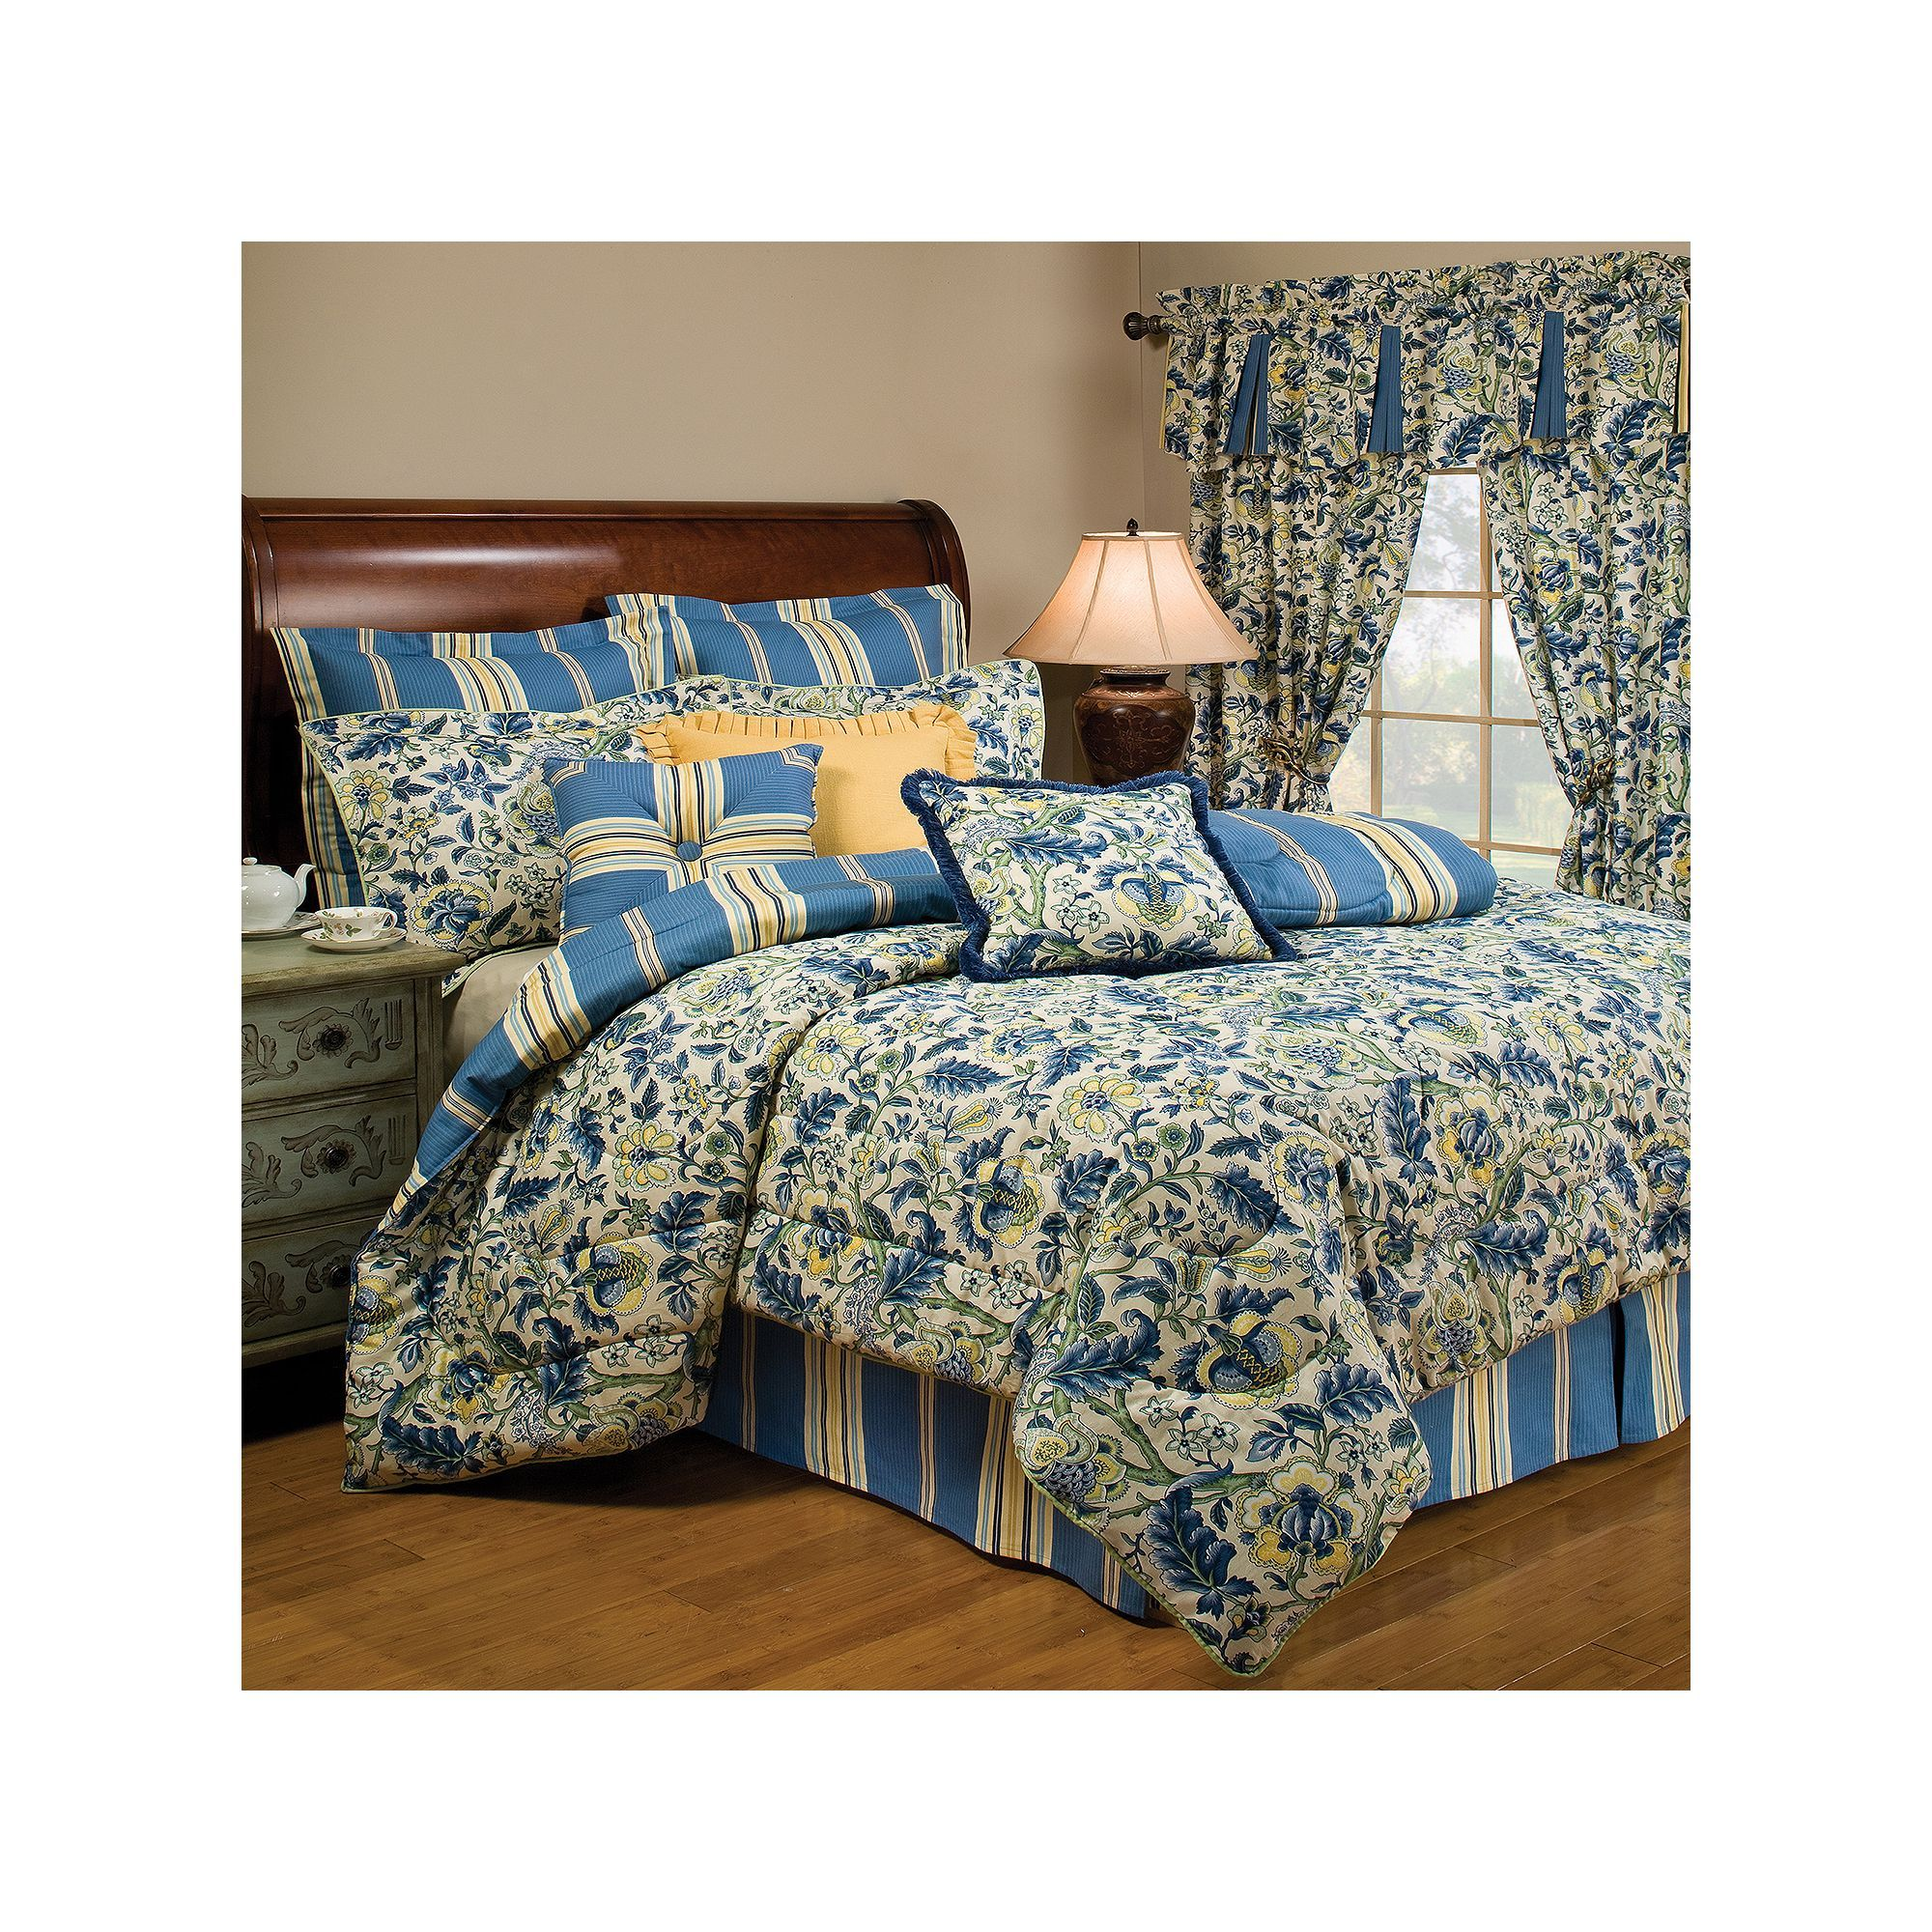 Waverly Imperial Dress 4 pc Reversible Comforter Set